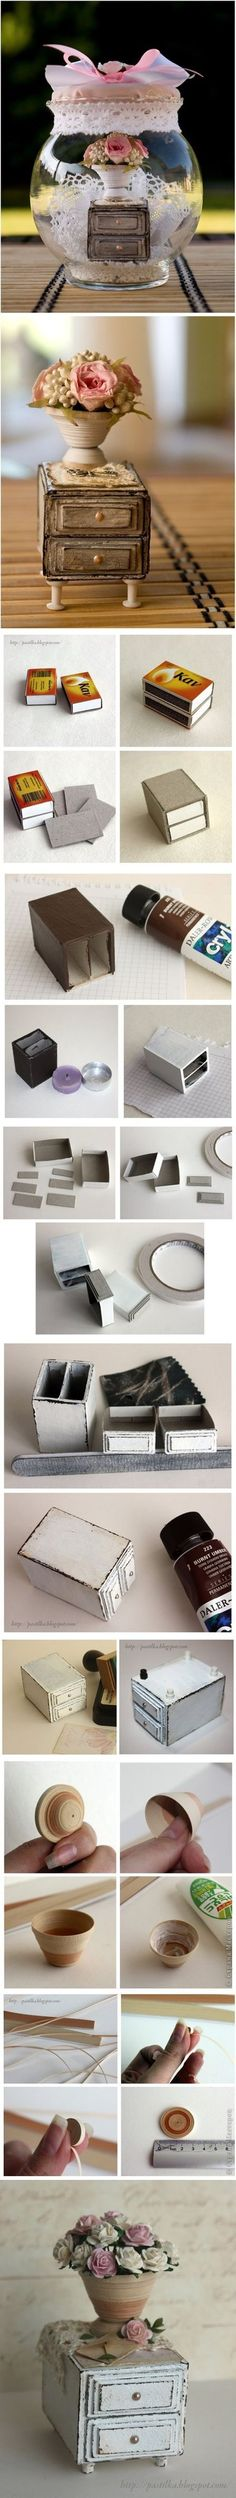 DIY Matchboxes Furniture DIY Projects | UsefulDIY.com Follow Us on Facebook ==> http://www.facebook.com/UsefulDiy